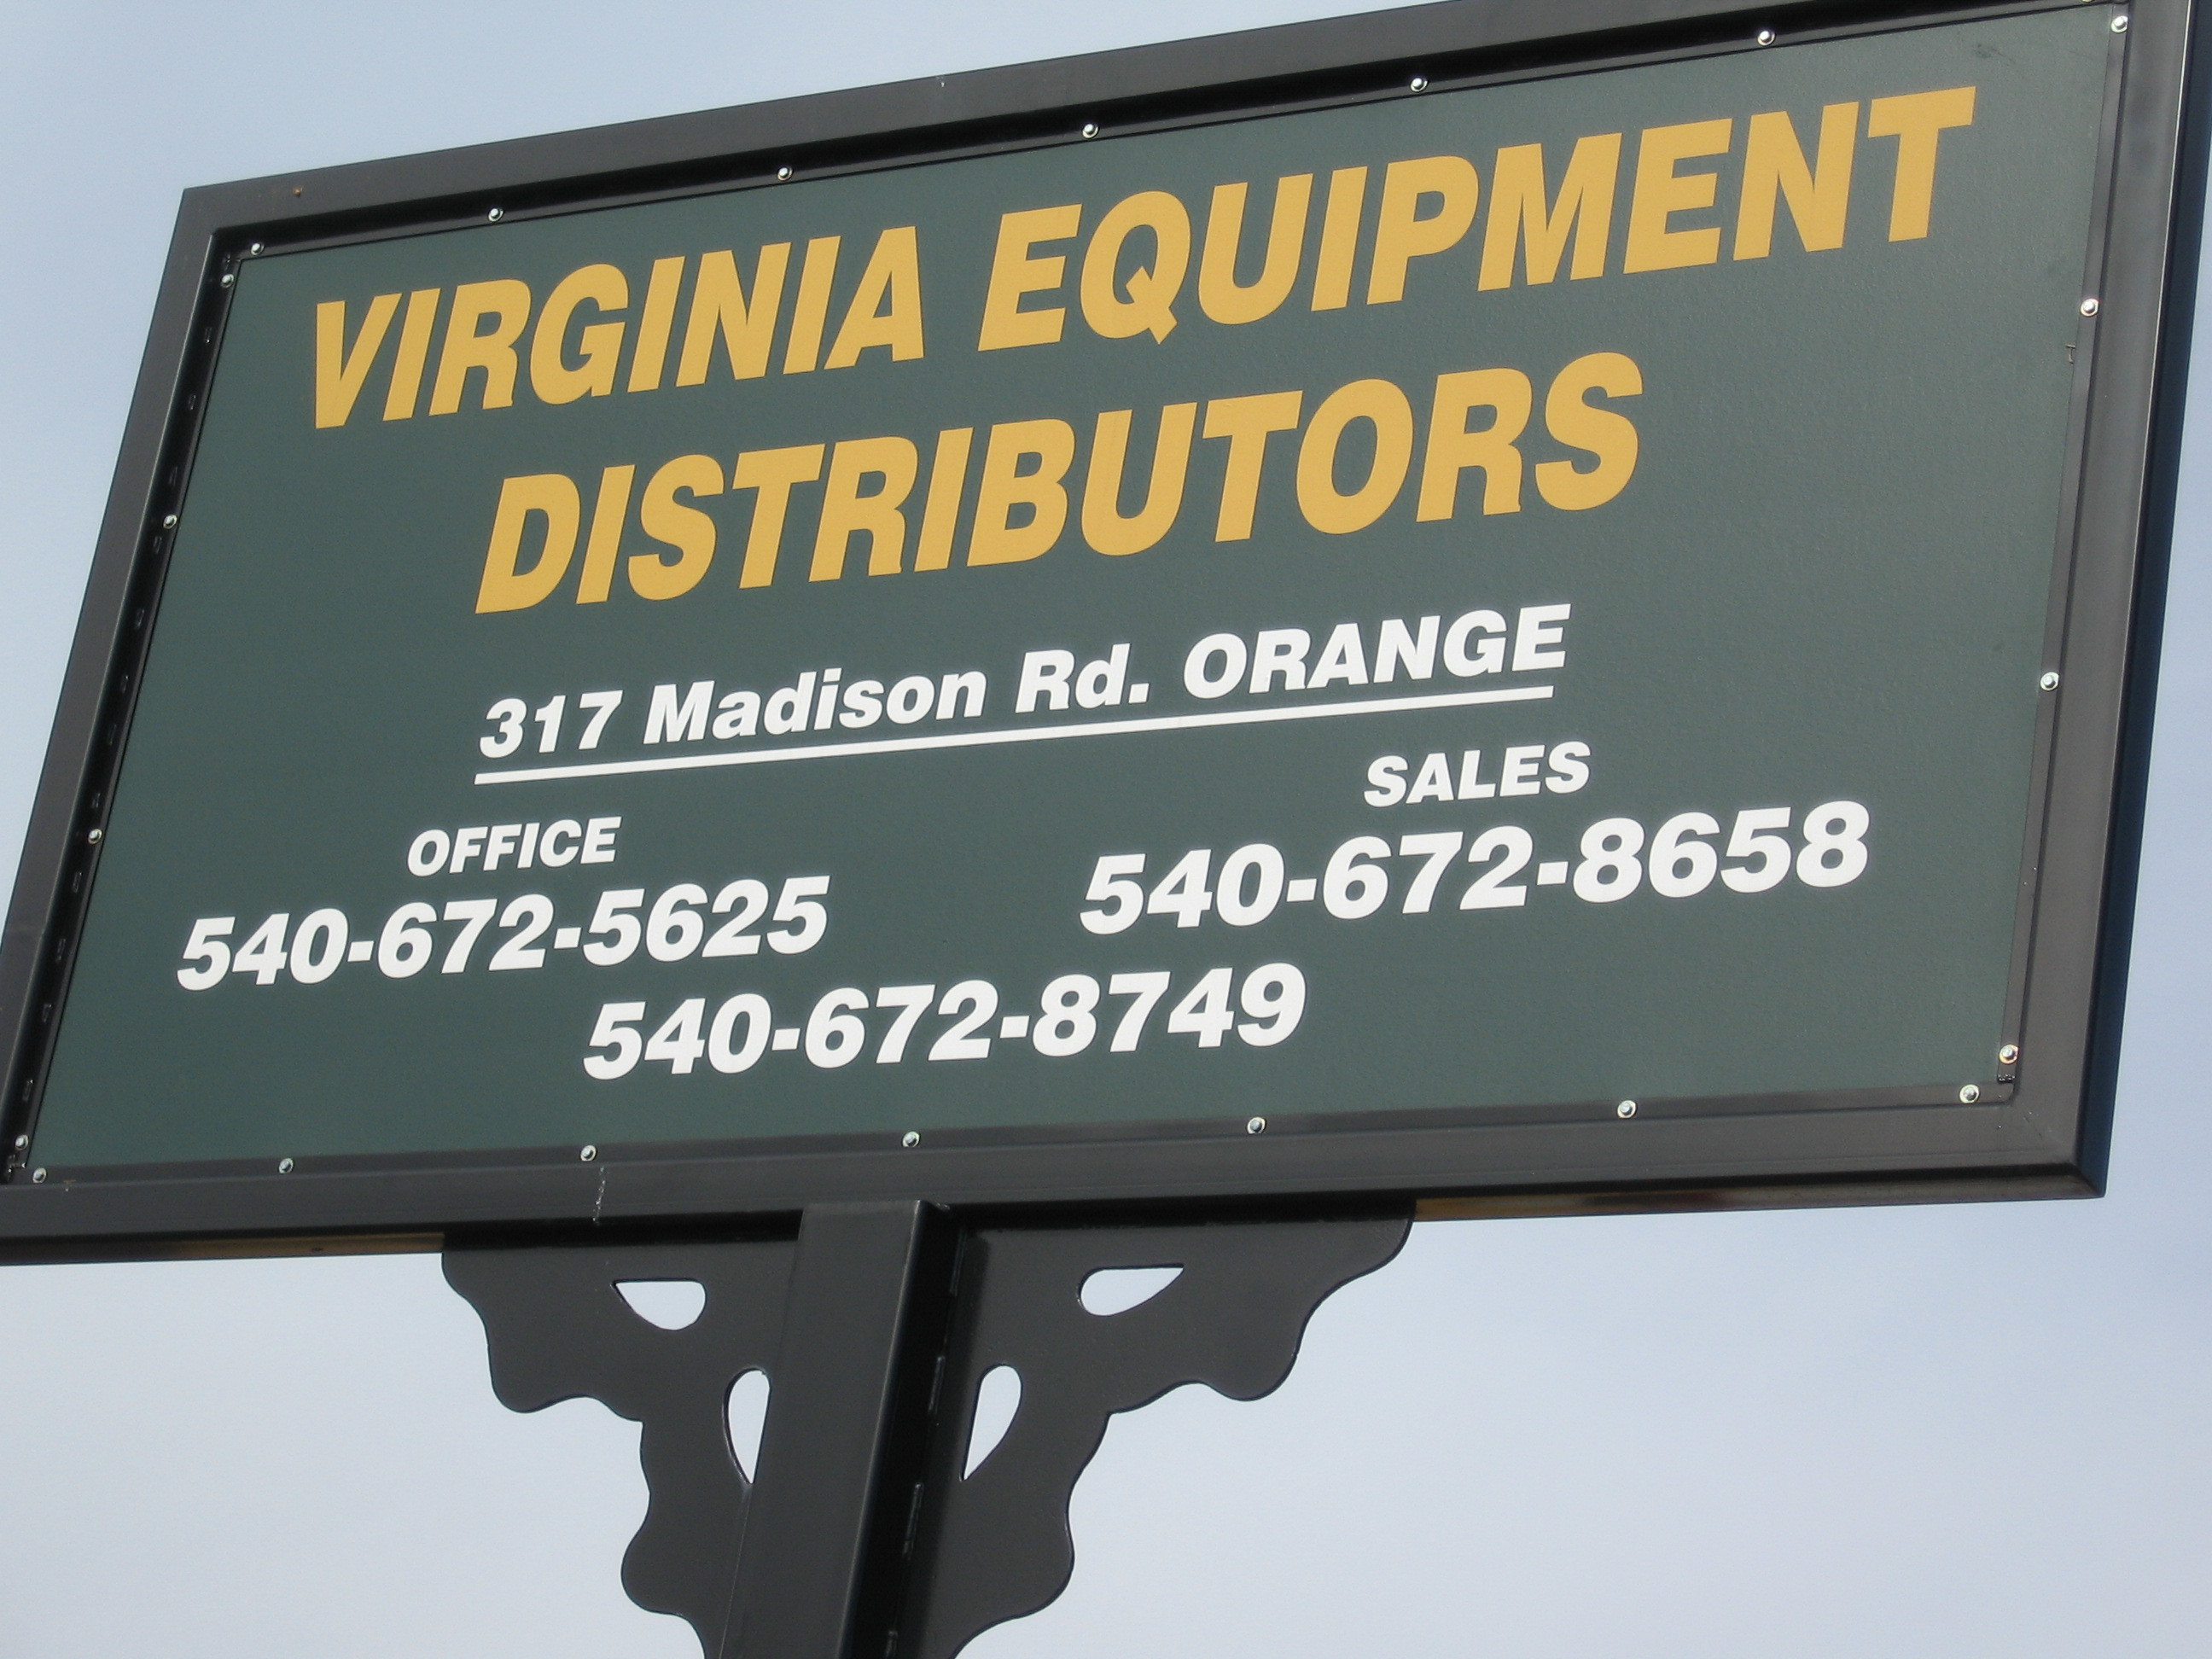 Virginia Equipment Distributors